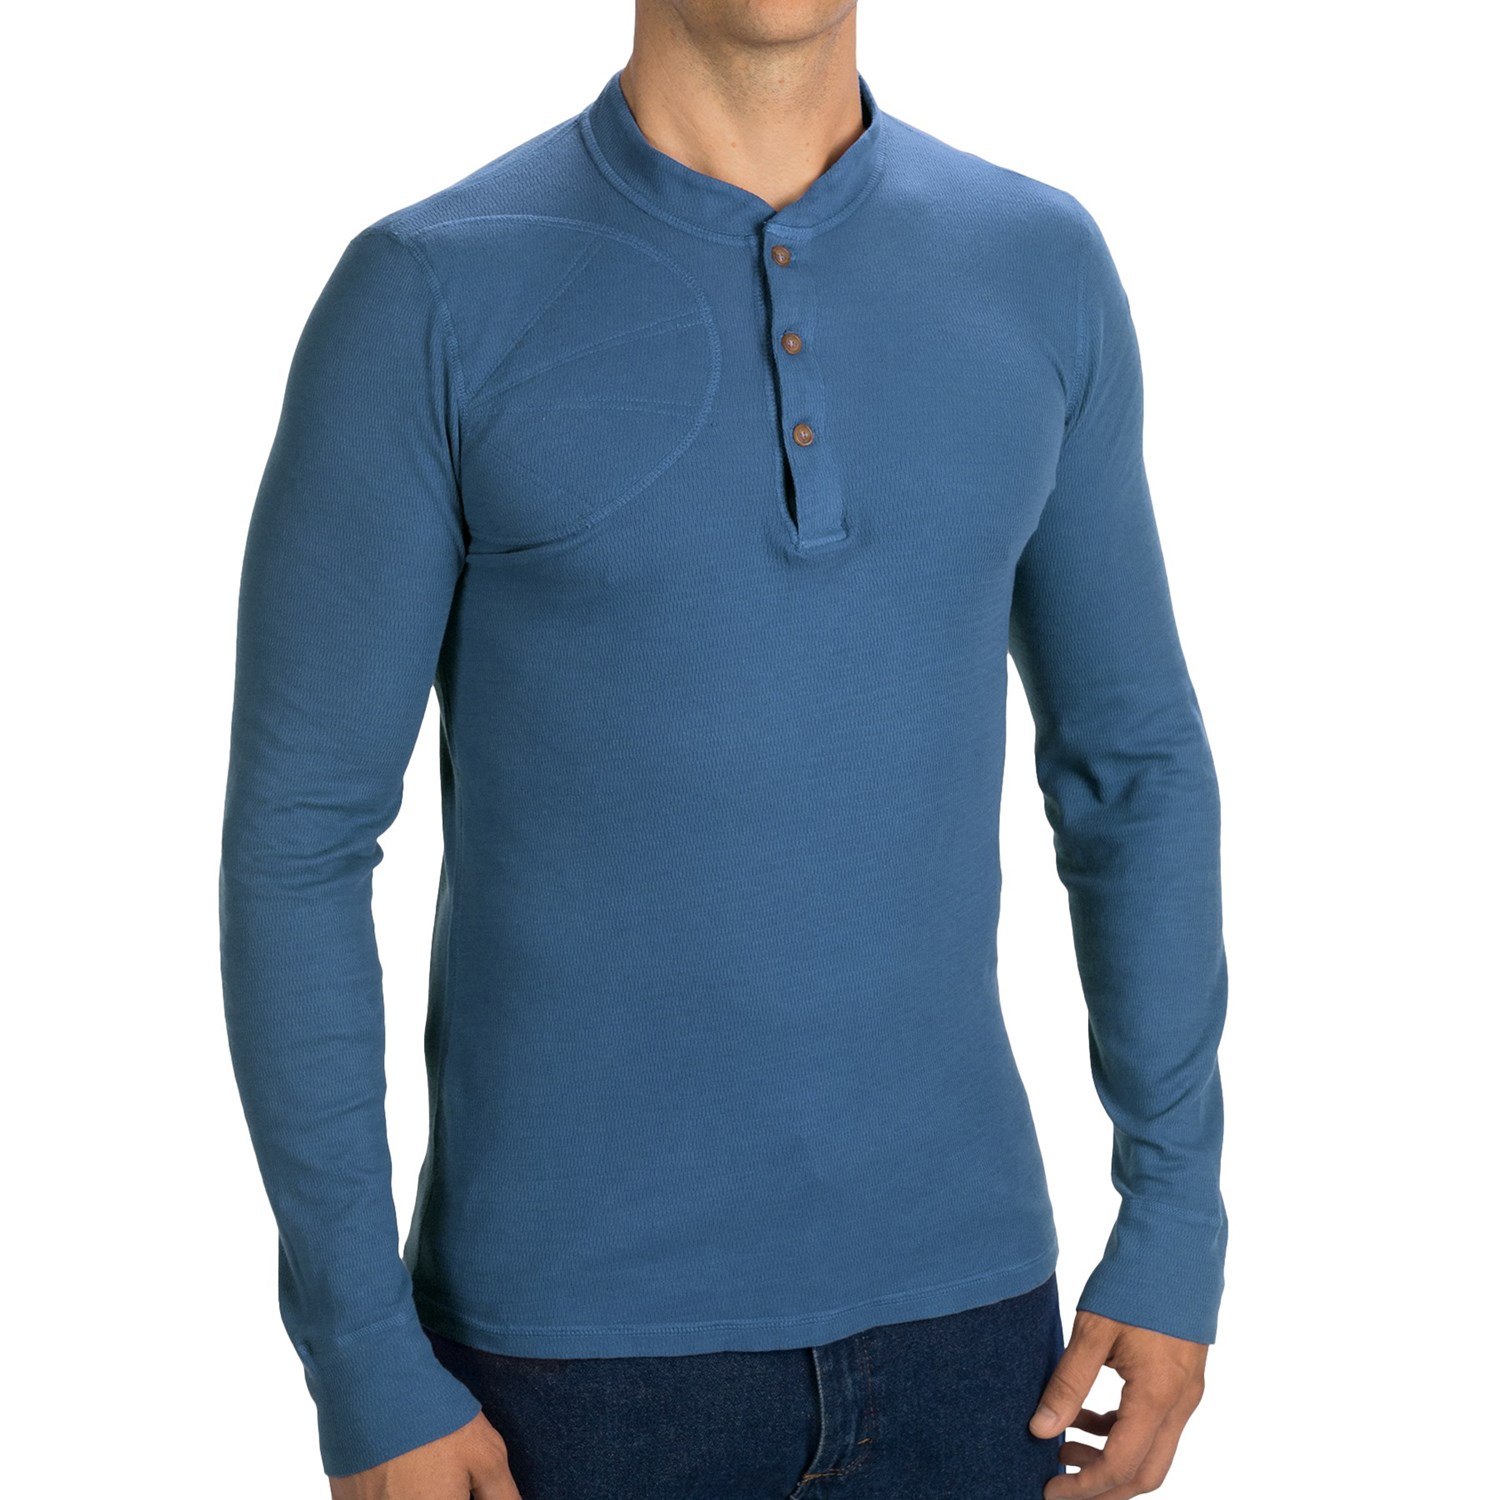 Shop ditilink.gq for men's clothing. Find men's t-shirts, men's jackets, men's cargo pants, flannel shirts for men, polos and men's hoodies.